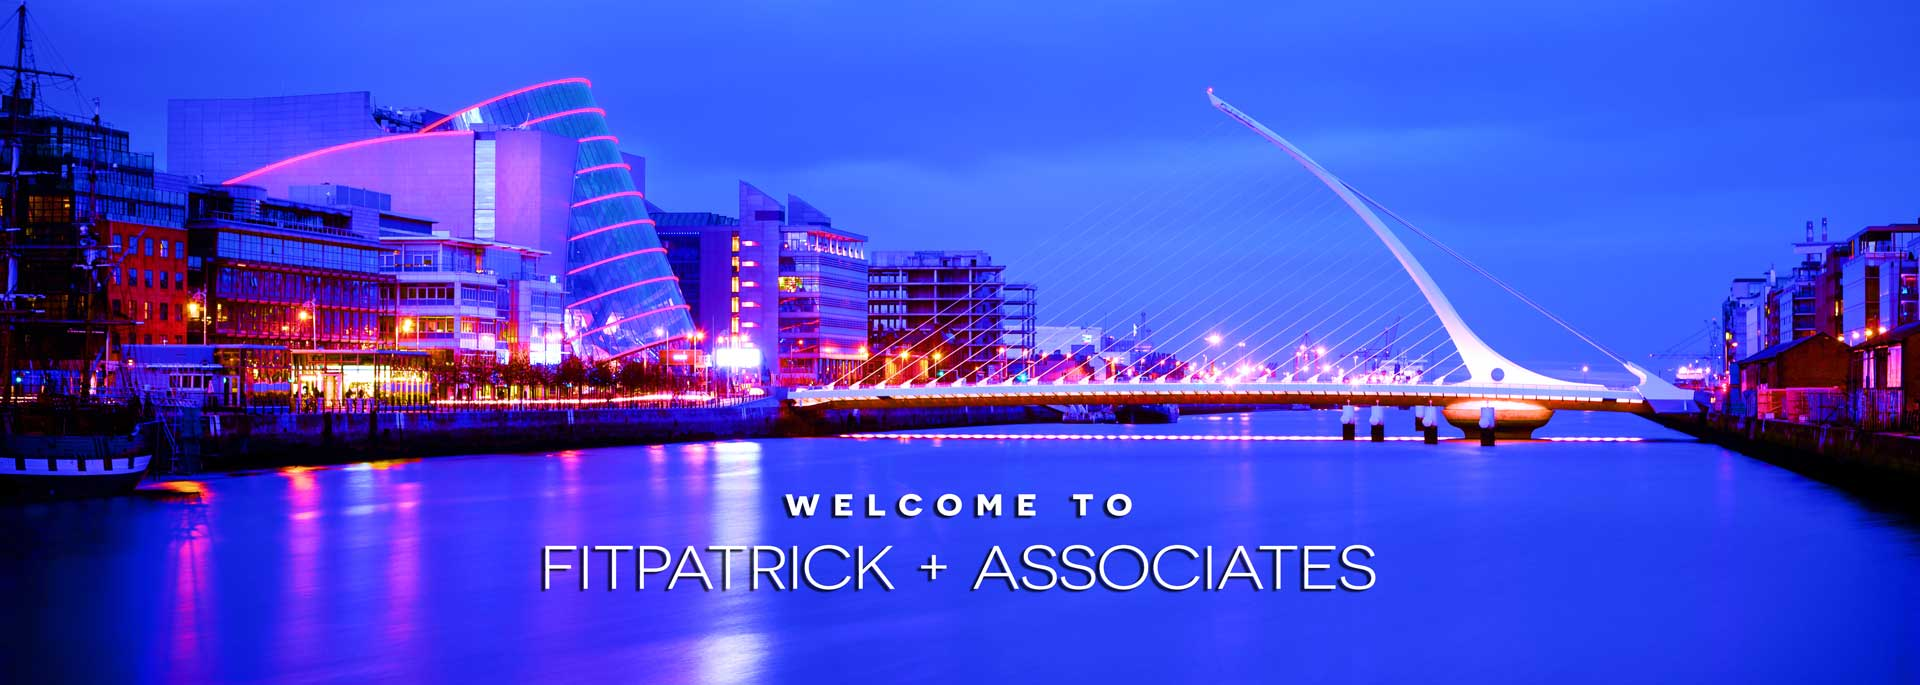 Accountants-Dublin-14---Fitzpatrick-and-Associates-slide-3